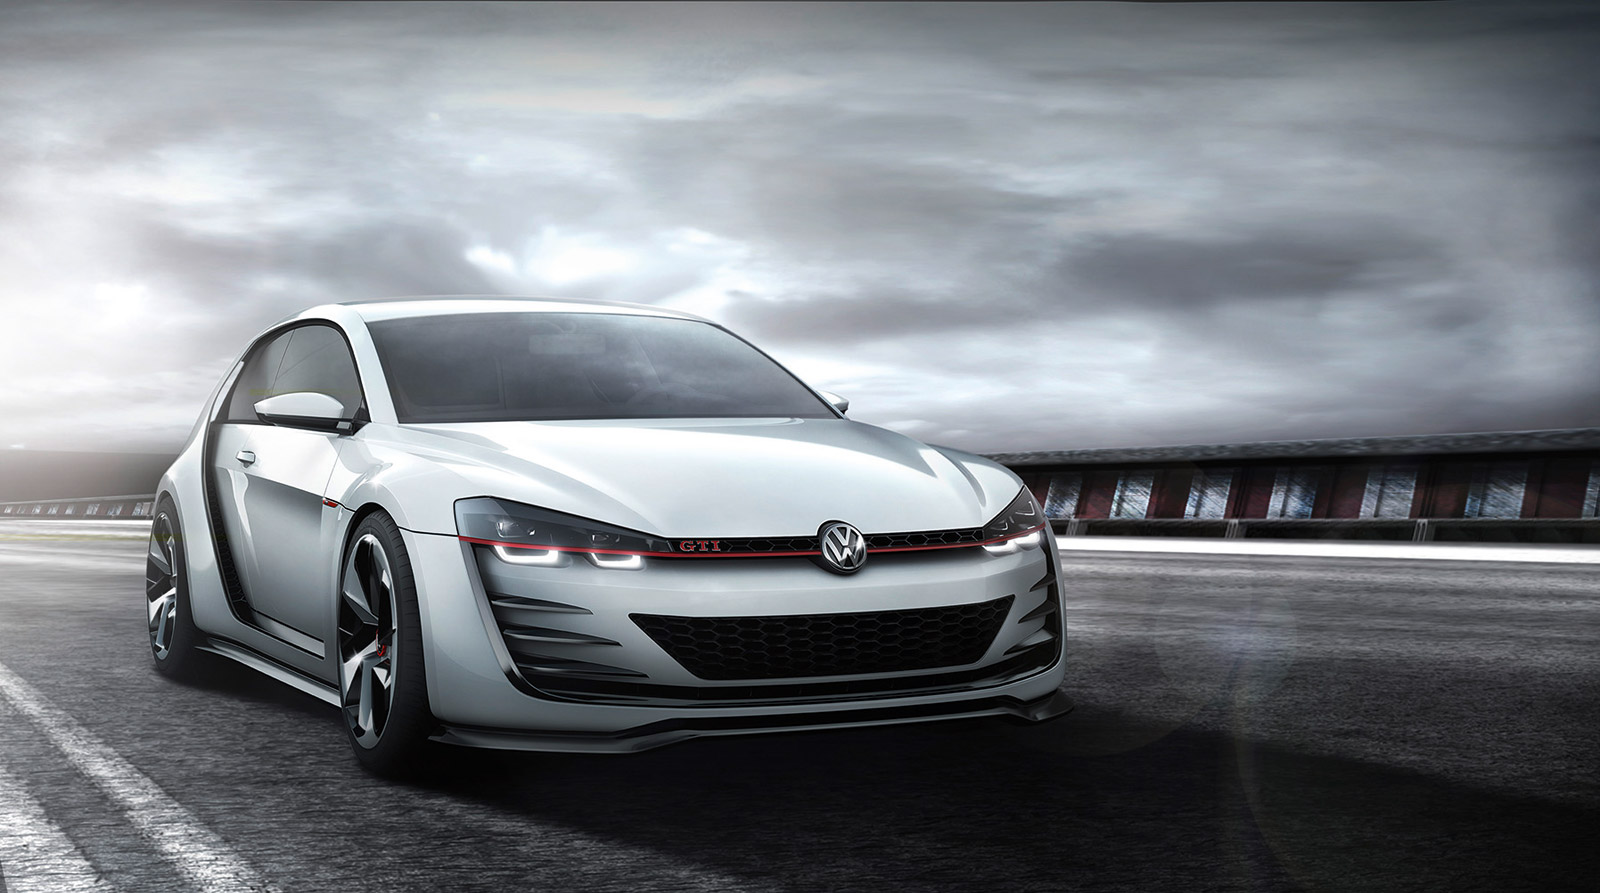 volkswagen working on 500 hp twin turbo vr6 engine report. Black Bedroom Furniture Sets. Home Design Ideas